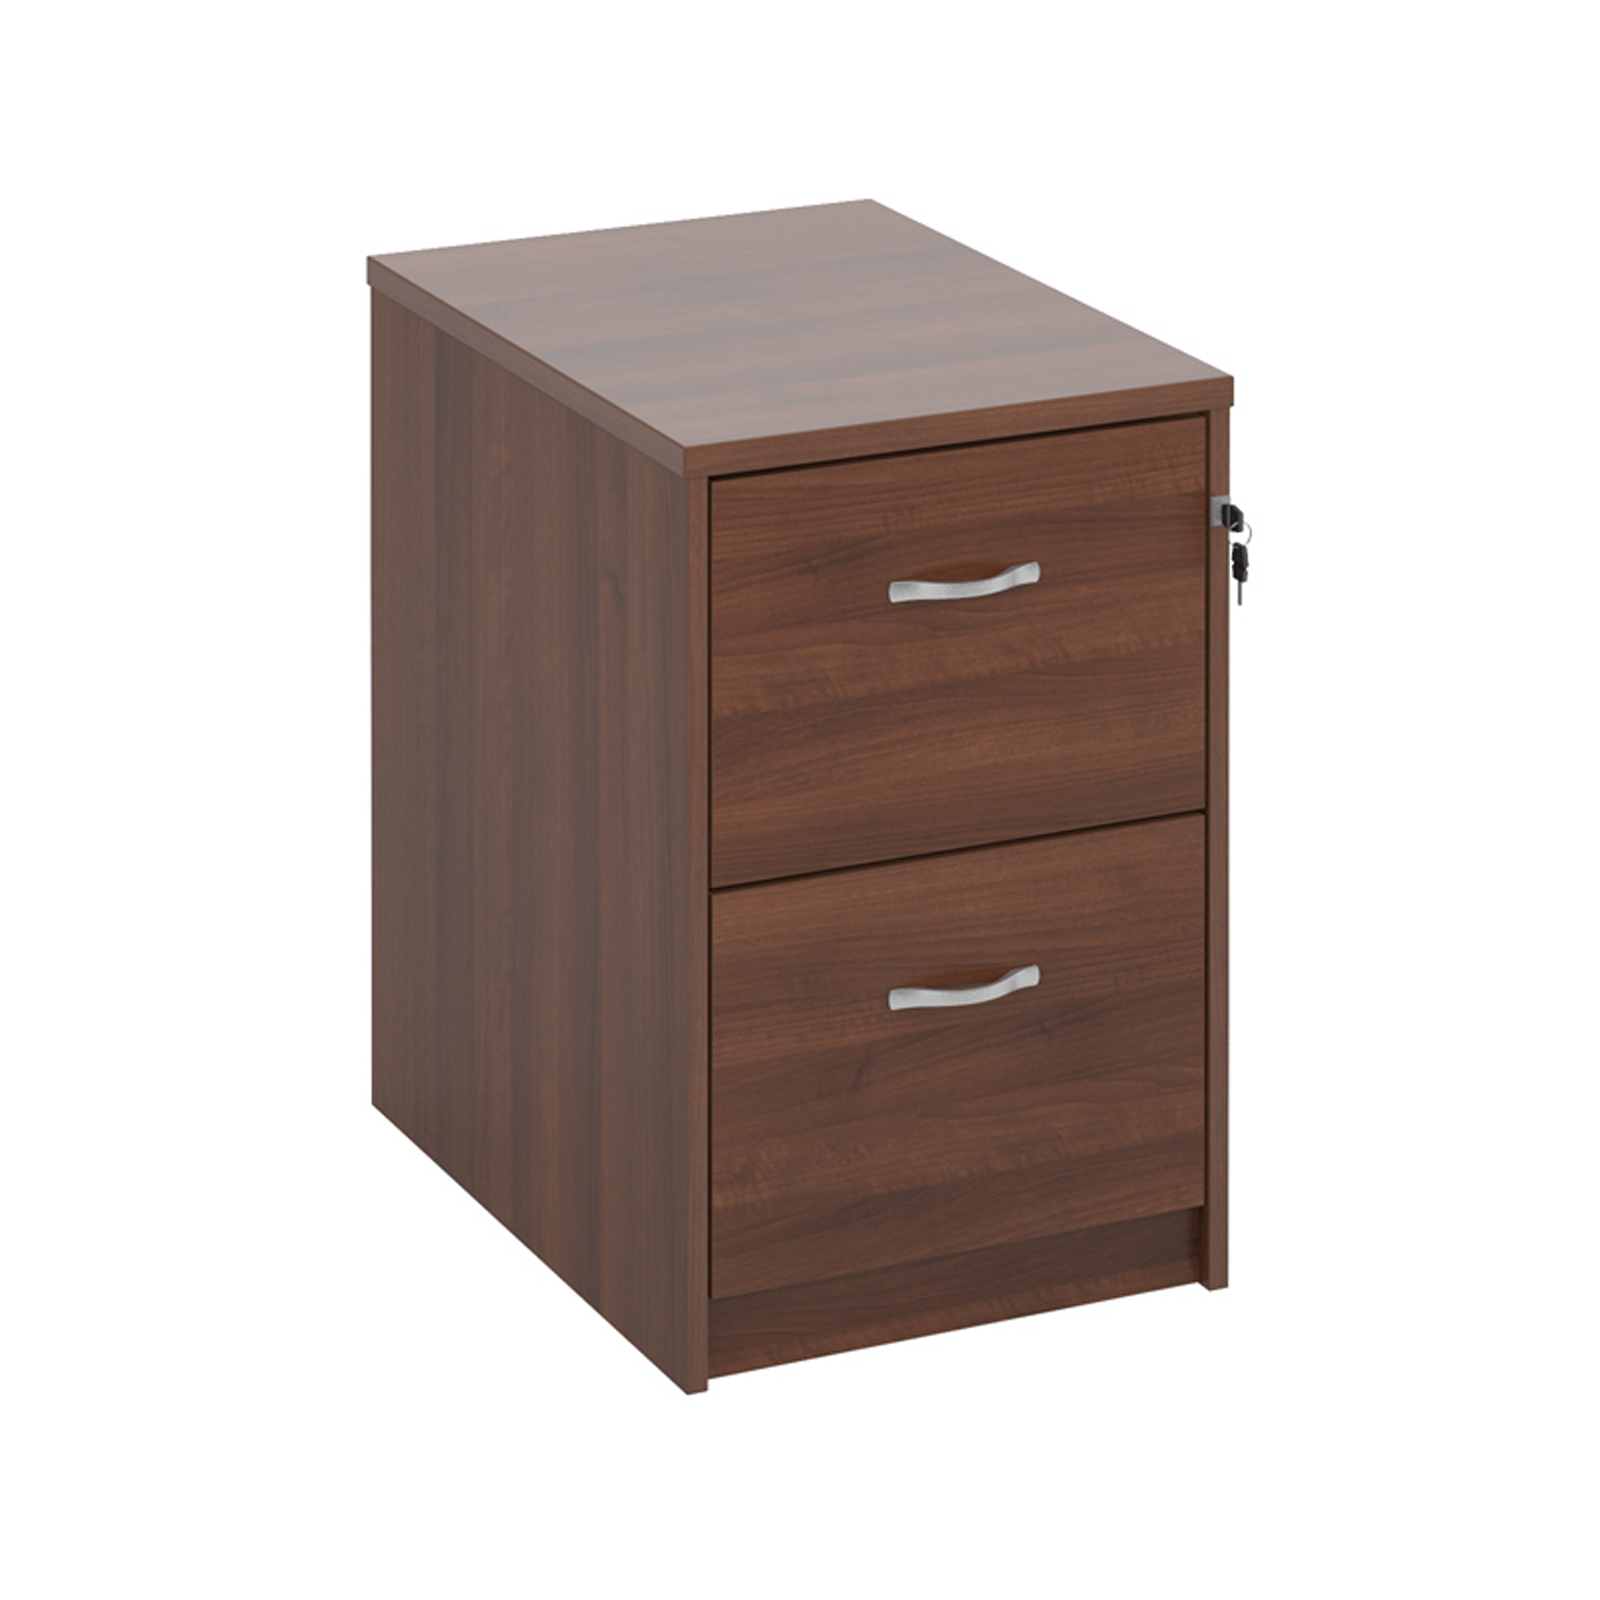 Wood Wooden 2 drawer filing cabinet with silver handles 730mm high - walnut